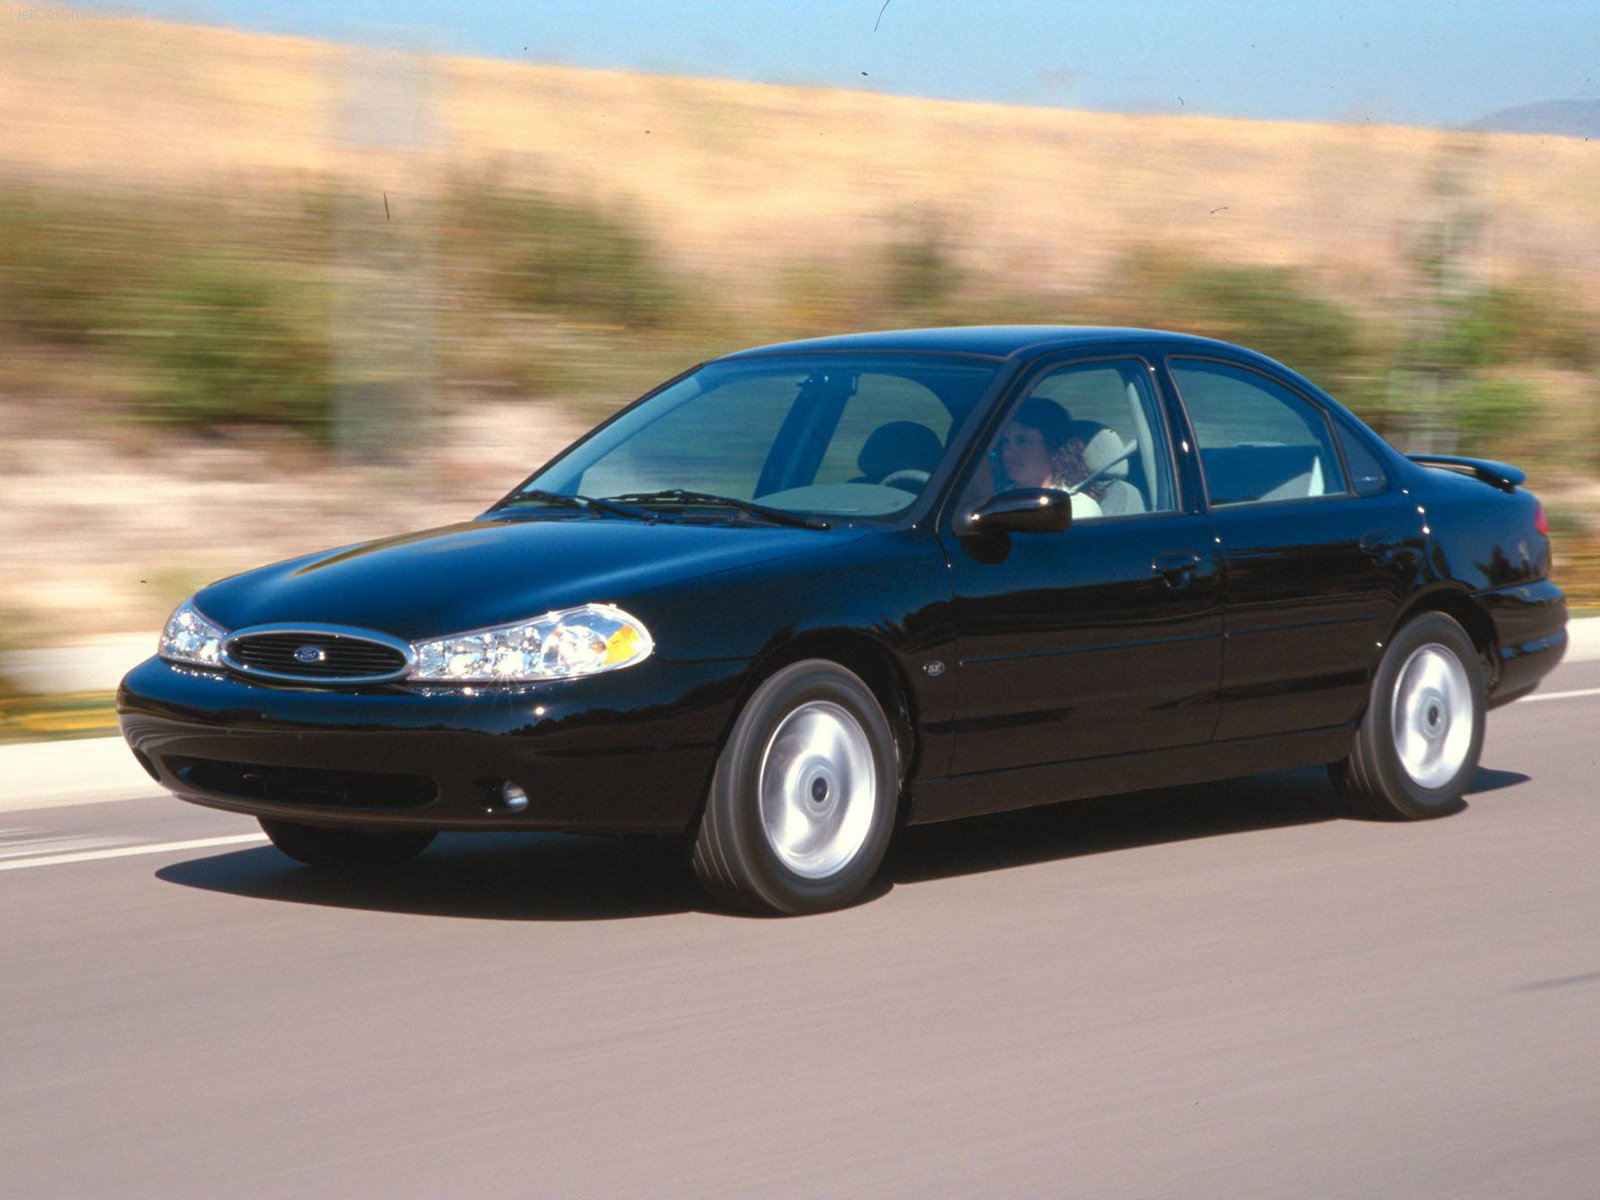 Ford Contour photo 33084